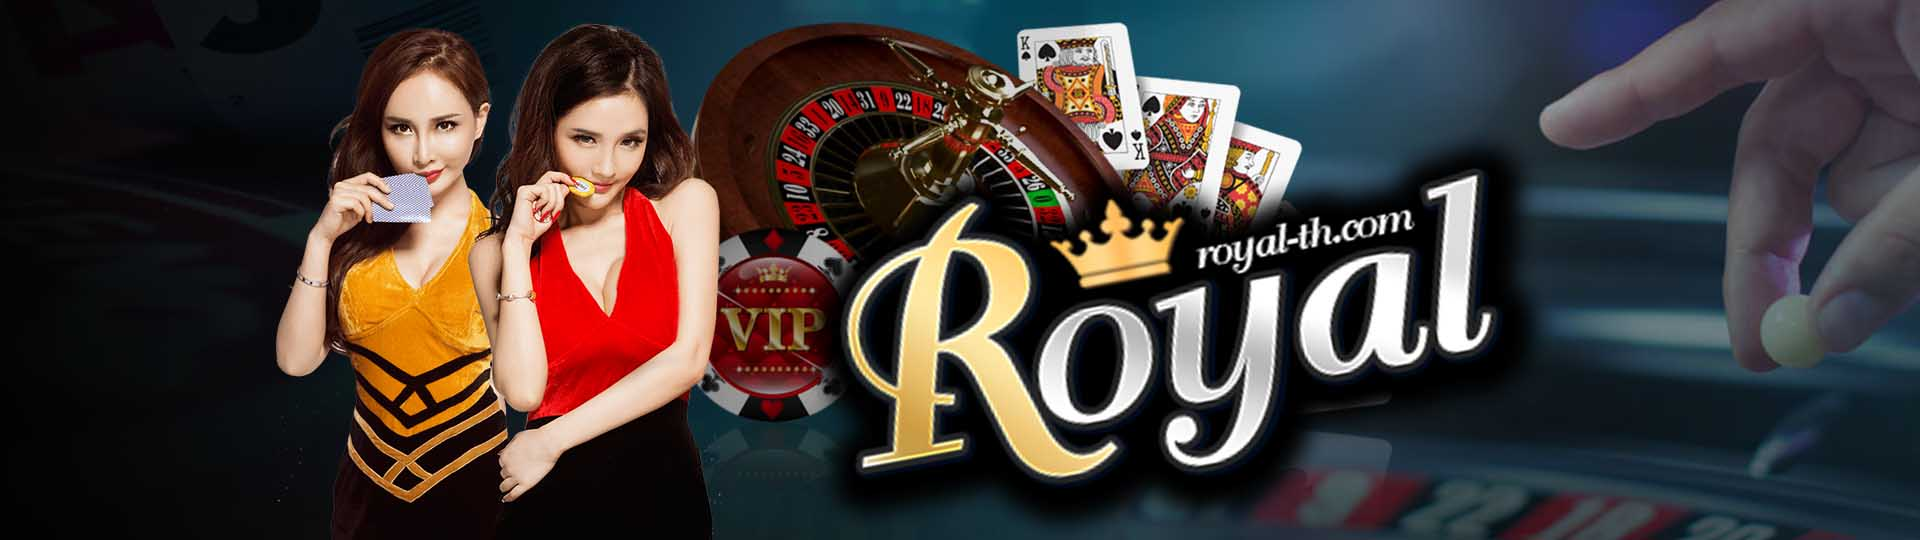 banner-logo-royalth-24